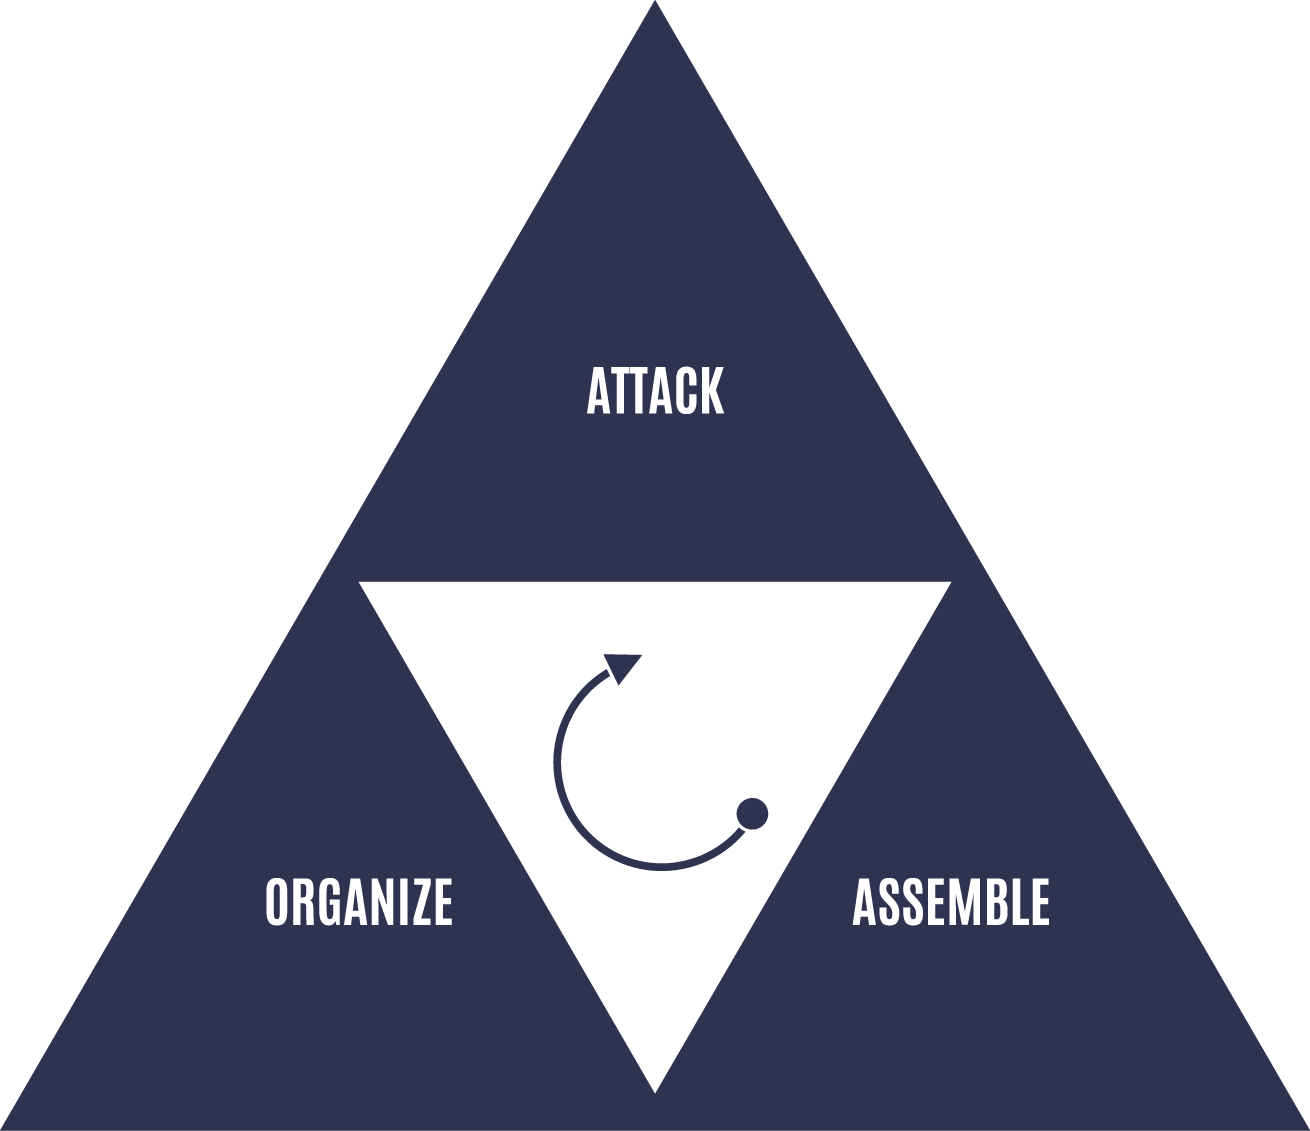 Scale-up_achterkant.png